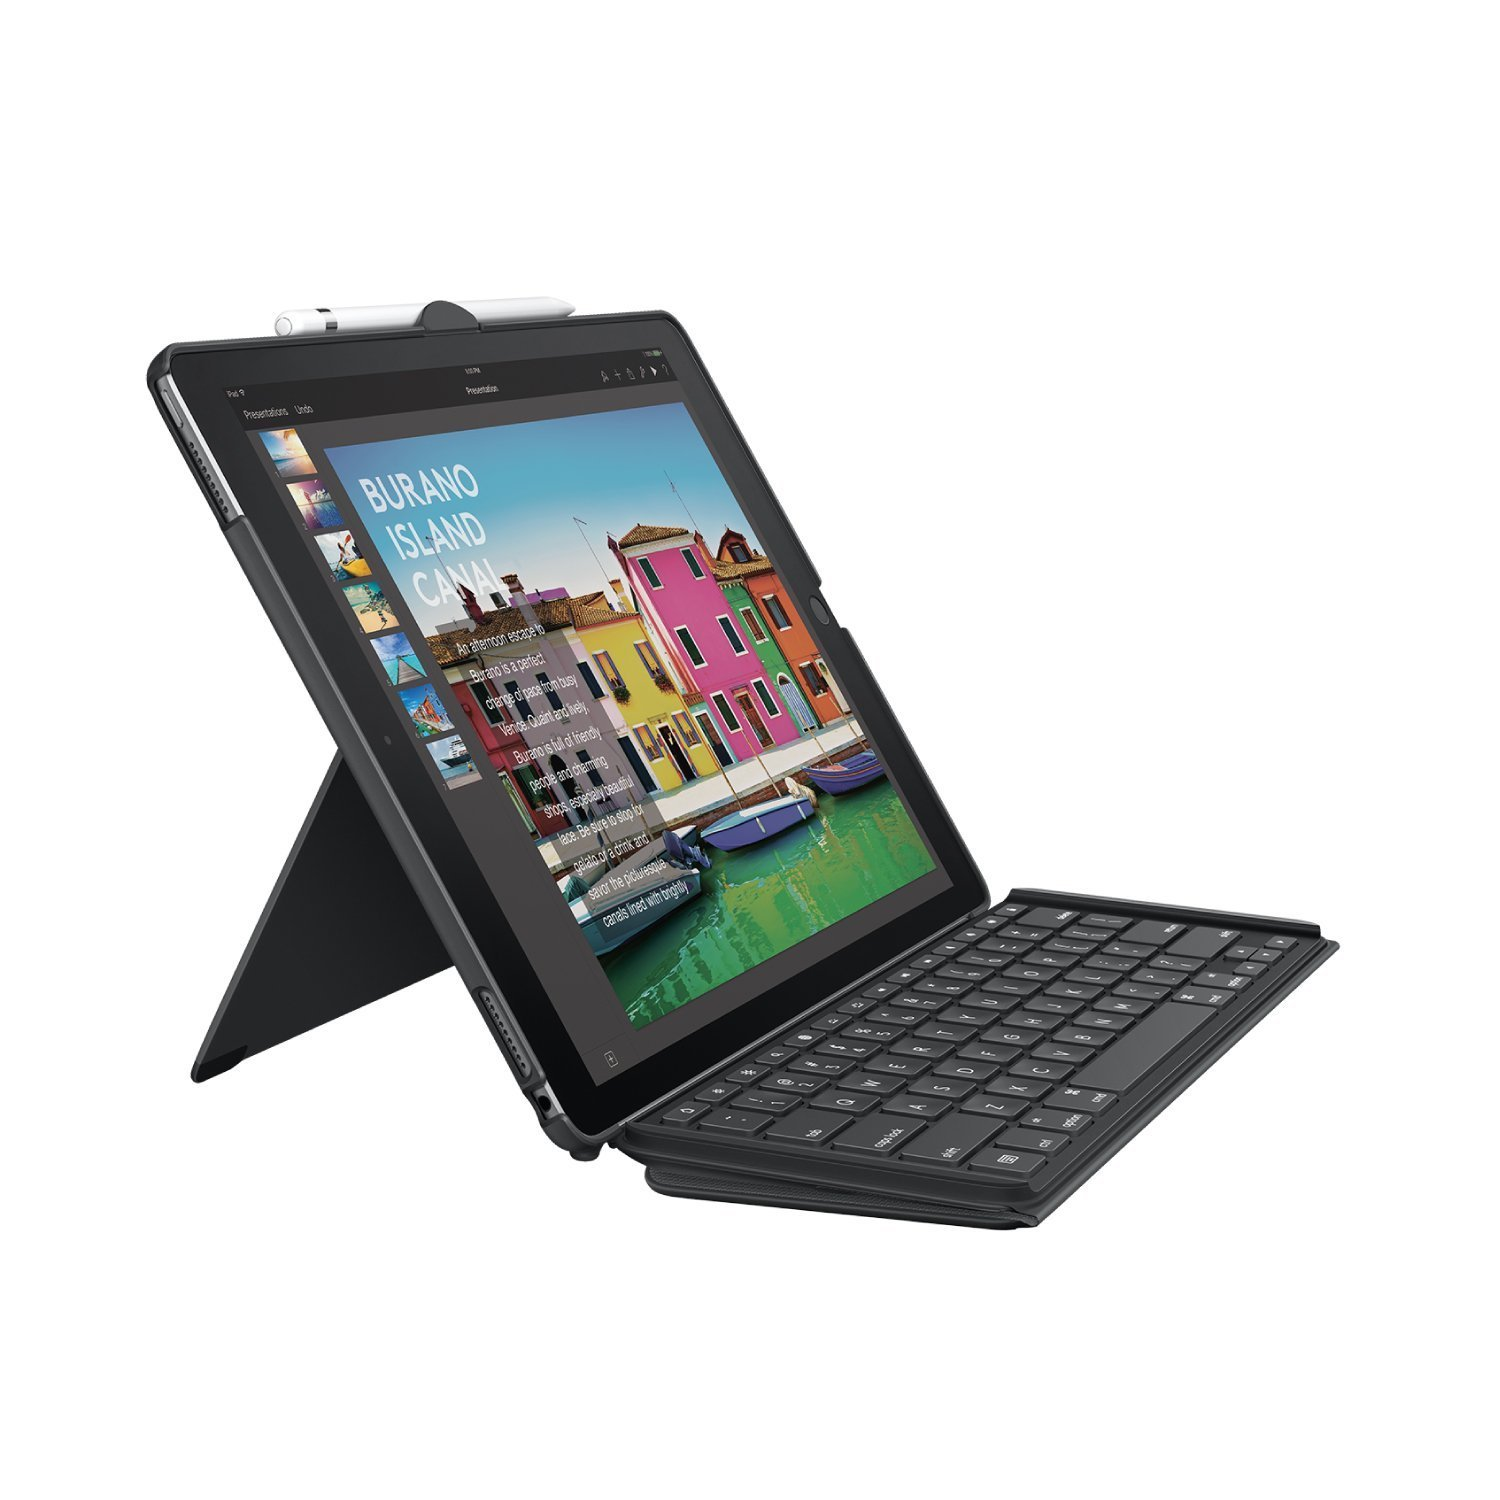 iPad Pro 12.9 inch Keyboard Case, Slim Combo with Detachable Backlit Wireless Keyboard and Smart Connector Logetich (Black)